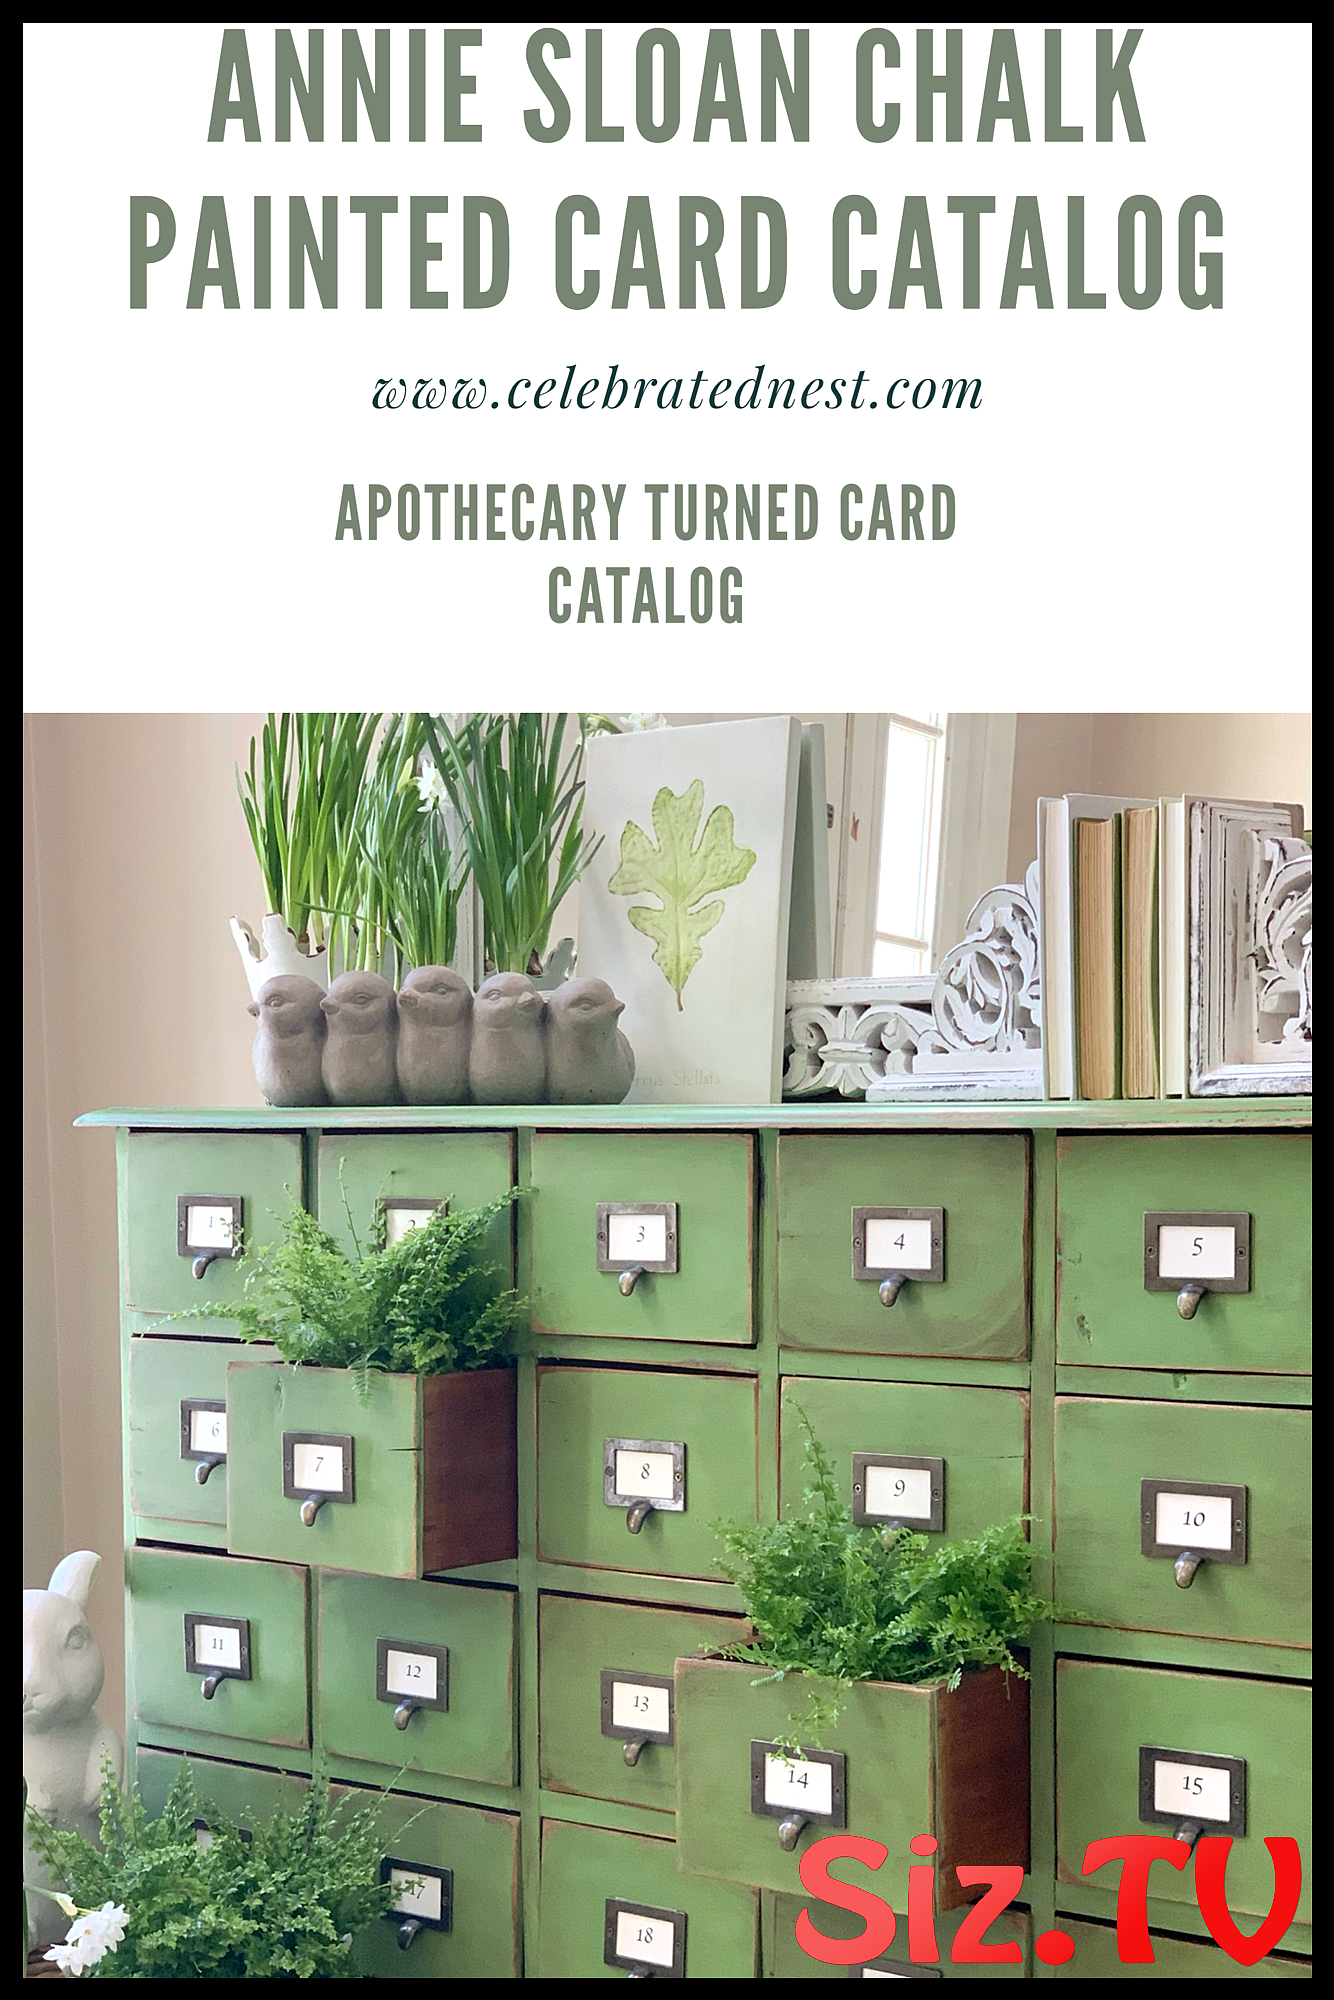 From Apothecary To Card Catalog Using Annie Sloan Chalk Paint Celebrated Nest Come See How To Make This Beautiful Green Card Catalog Using Annie Sloan Chalk Paint Chalkpaint Anniesloan Apothecary Cardcatalog Vintage Furnituremakeover